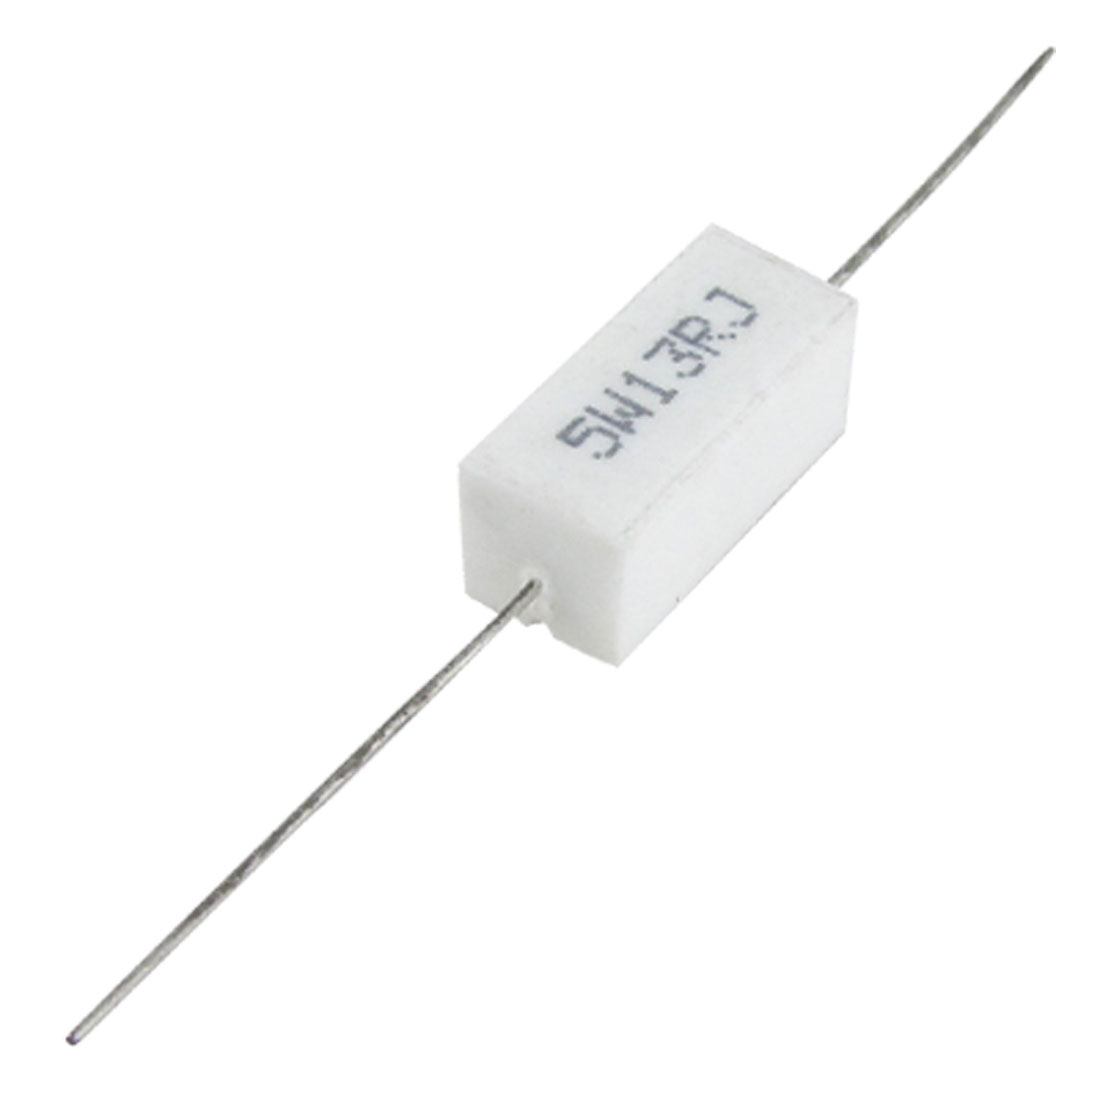 5W Watt 13 Ohm 5% Wirewound Ceramic Cement Resistor x 10